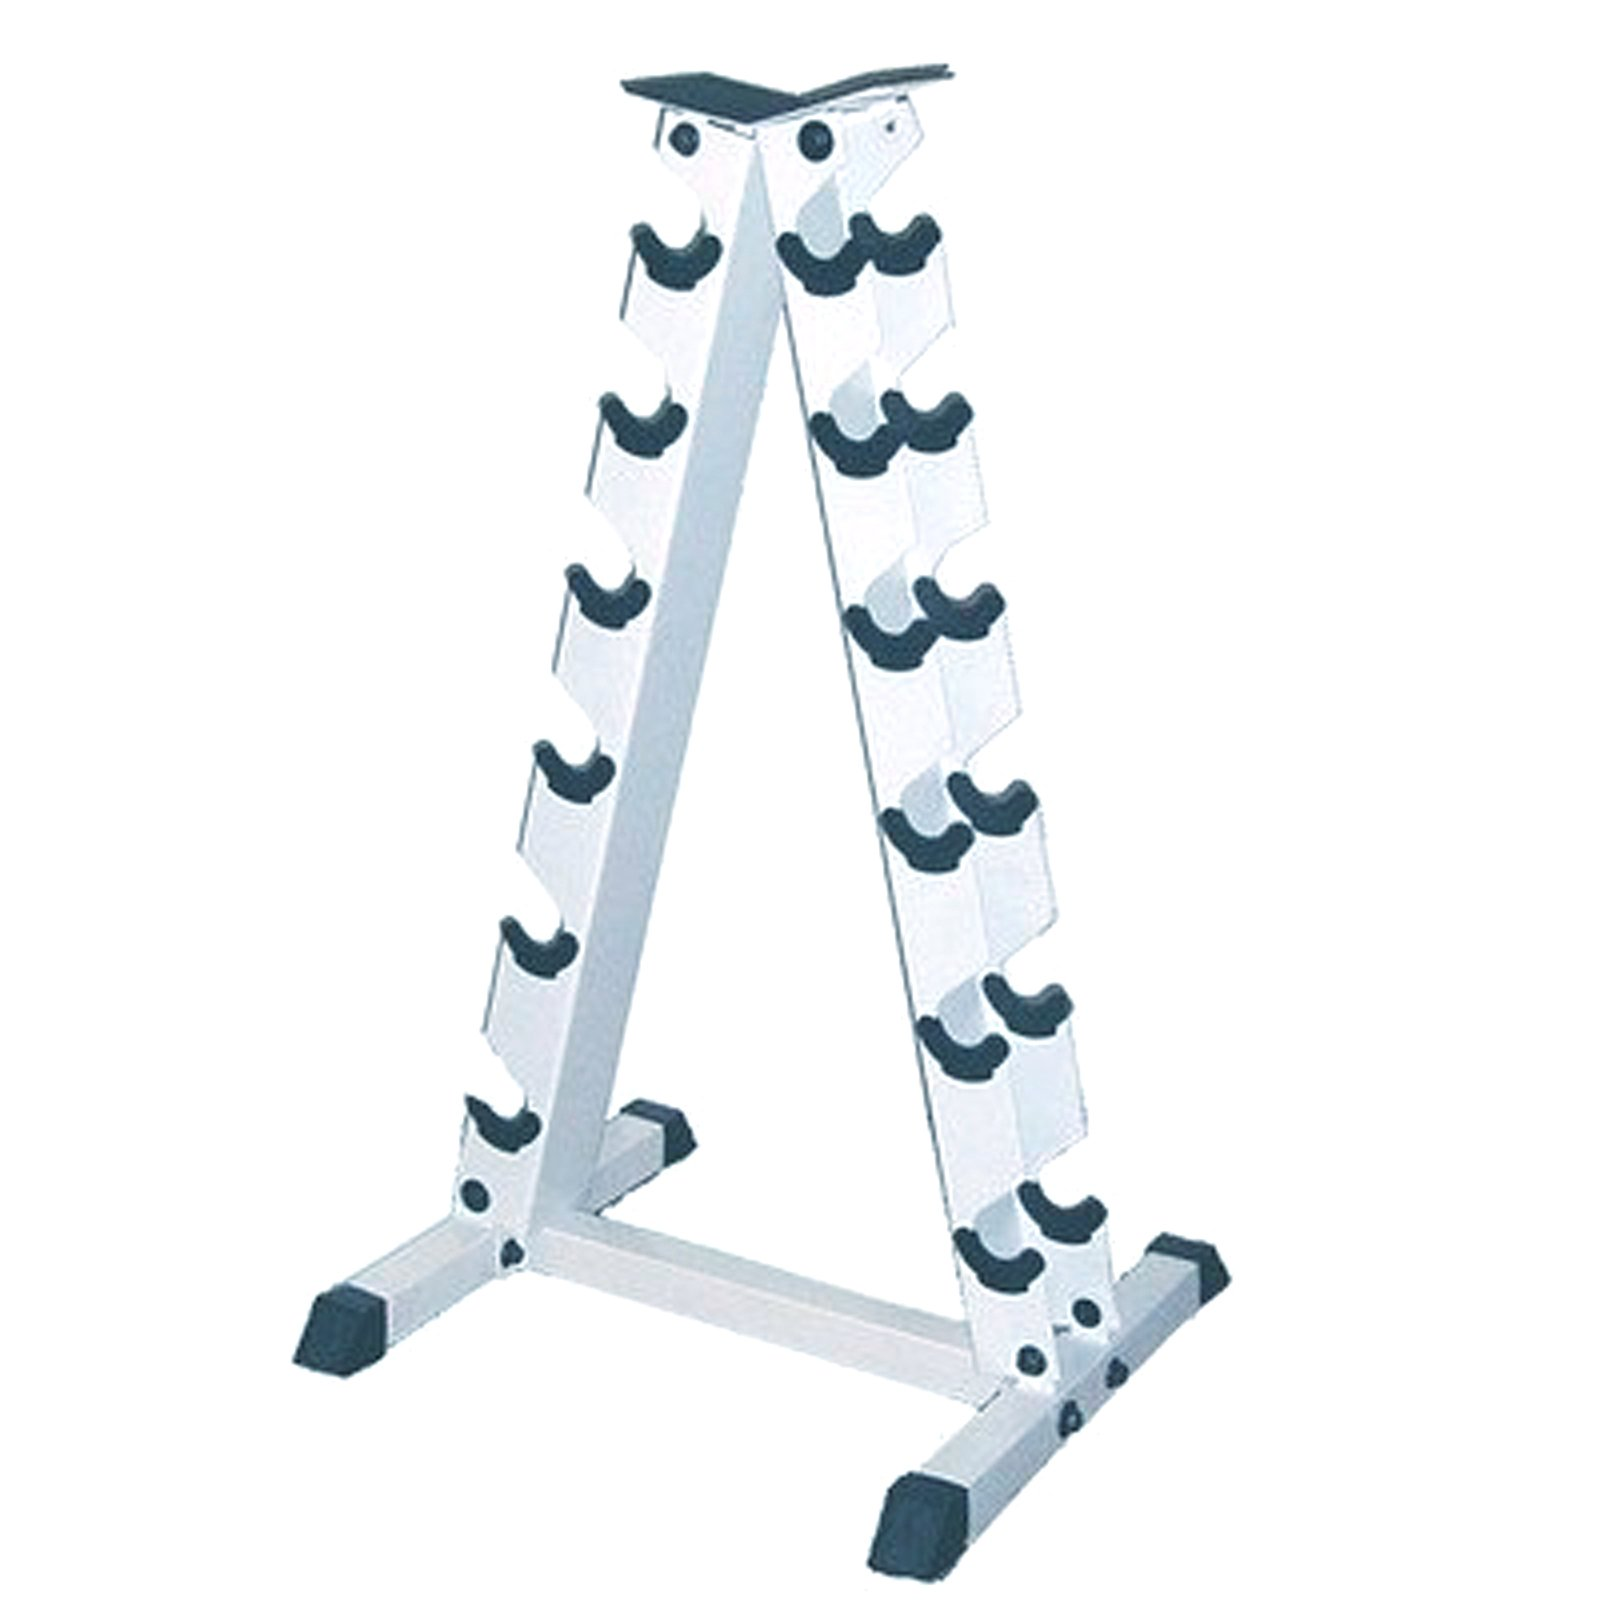 Apollo Athletics A-Frame Dumbbell Rack, Steel Storage Rack Organizer for 6-Pair Dumbells by Apollo Athletics